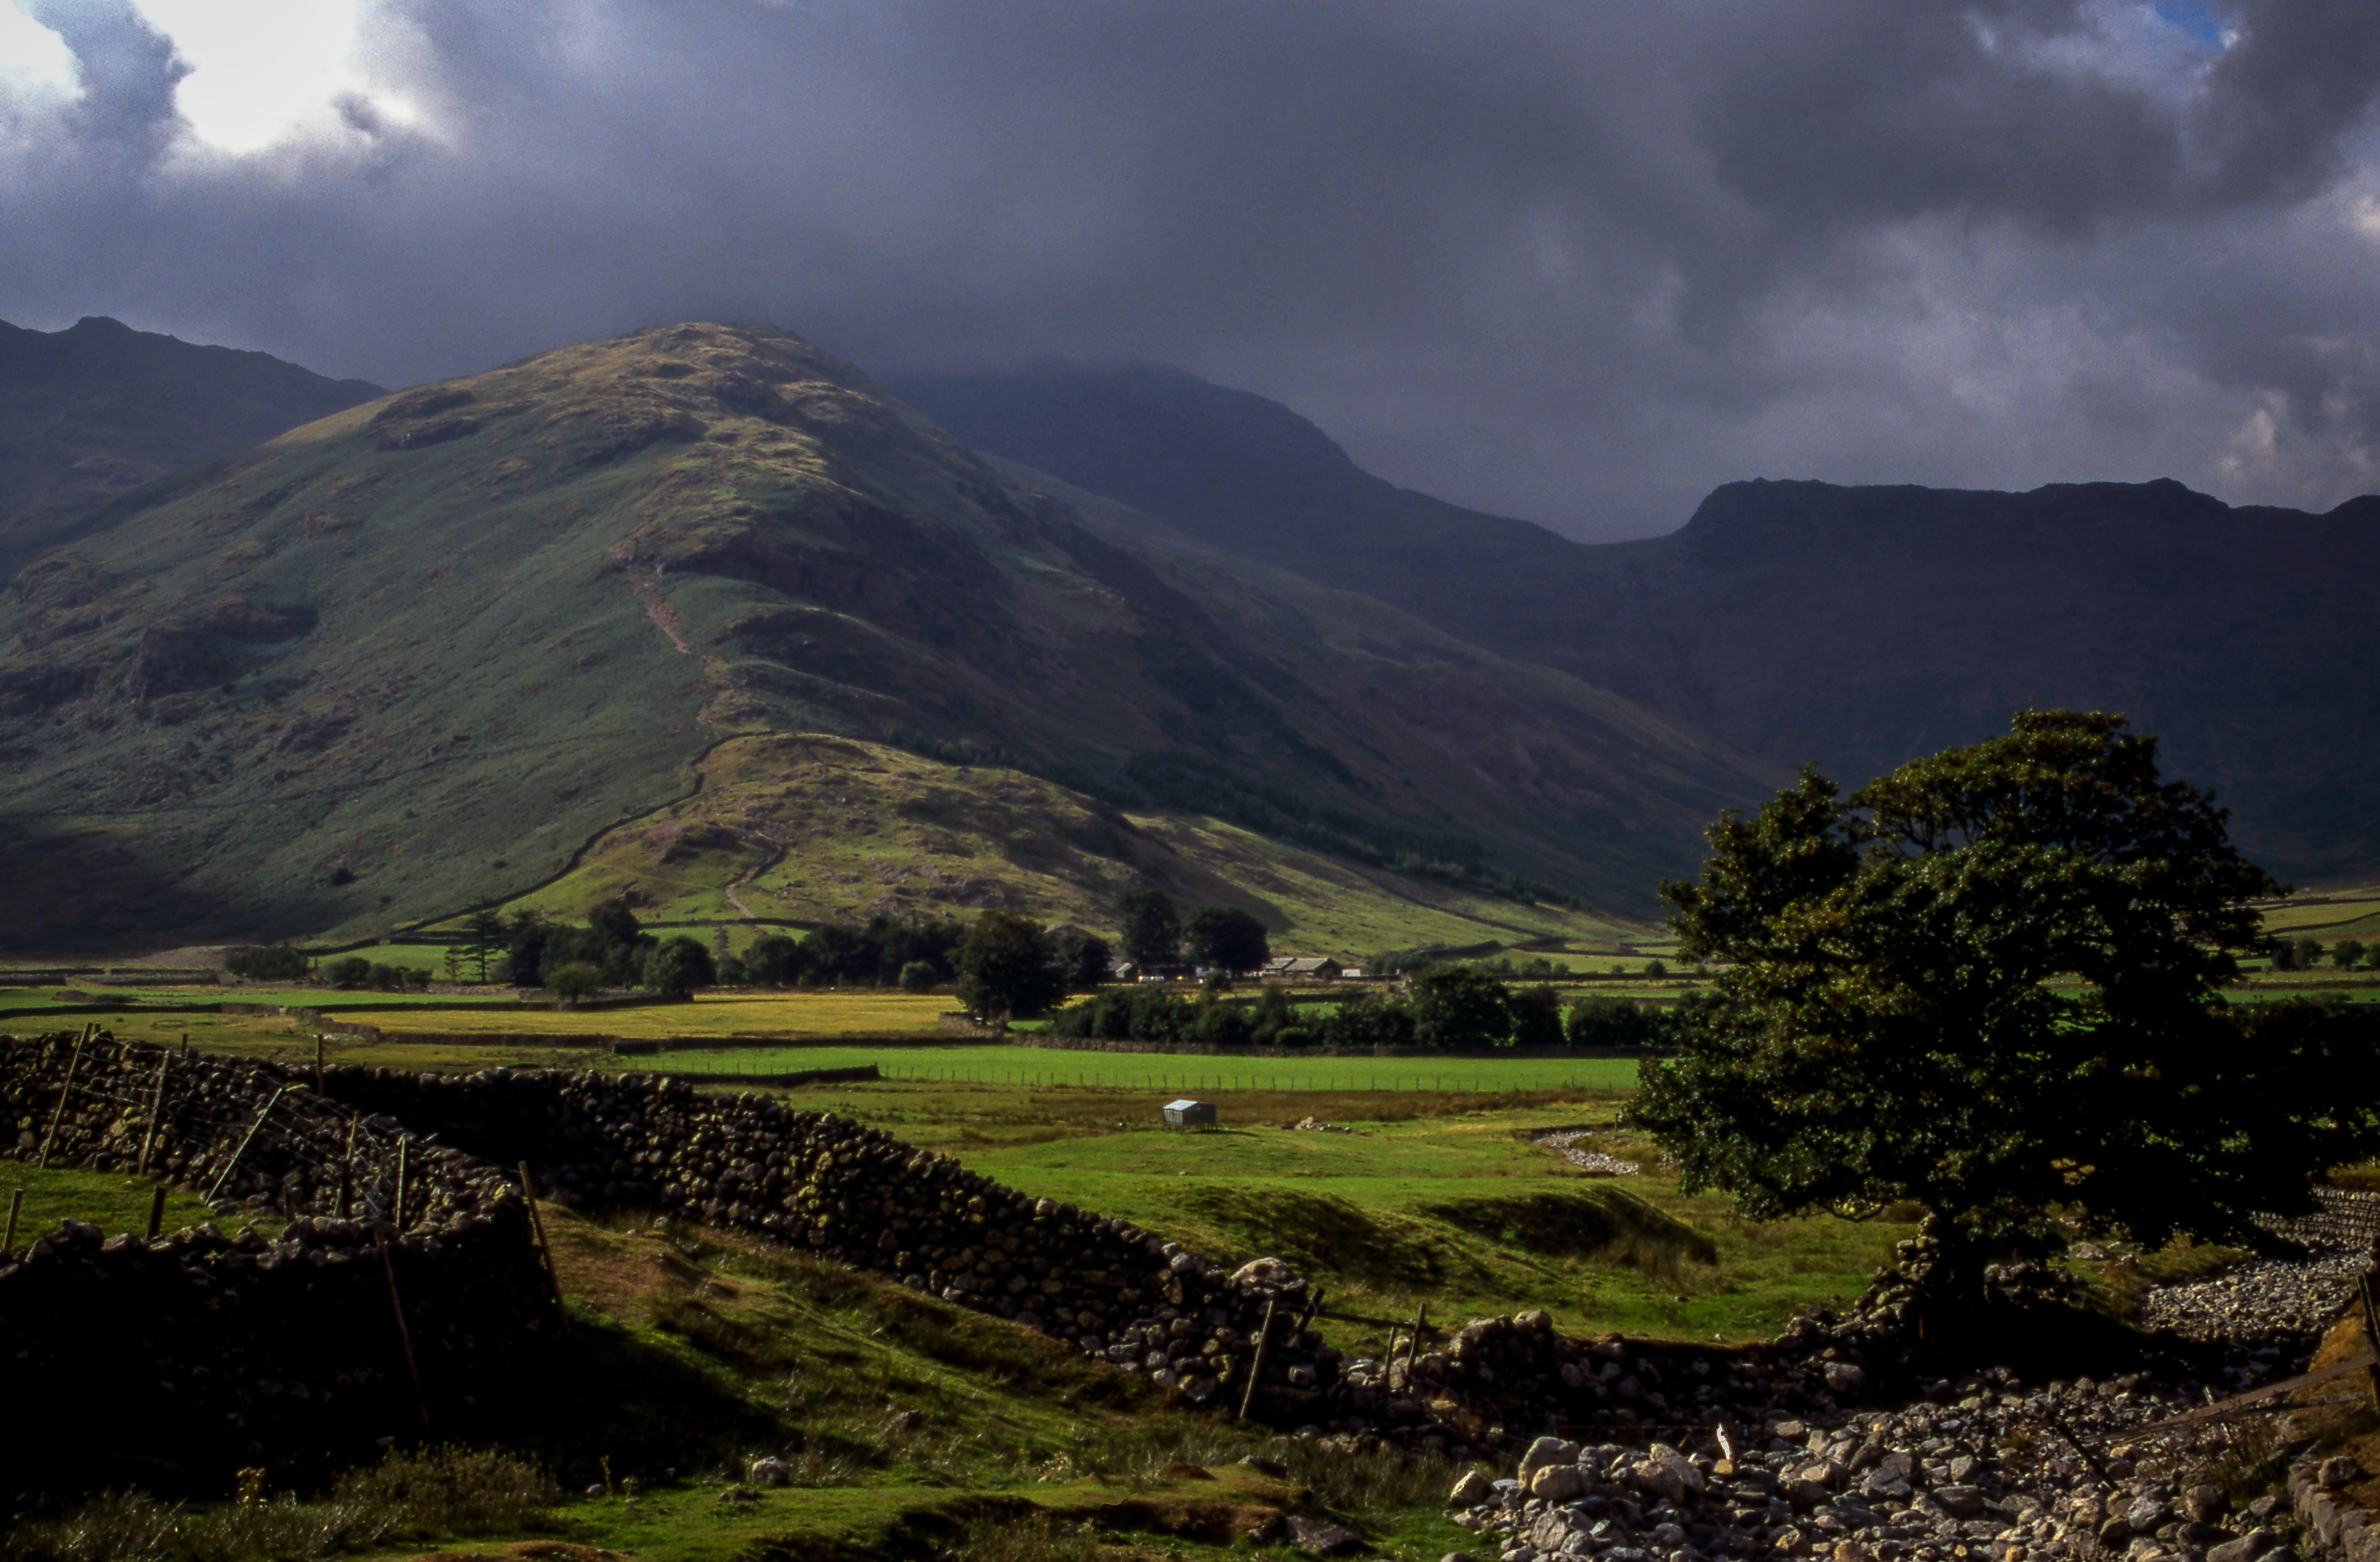 landscape photography of green and brown mountains